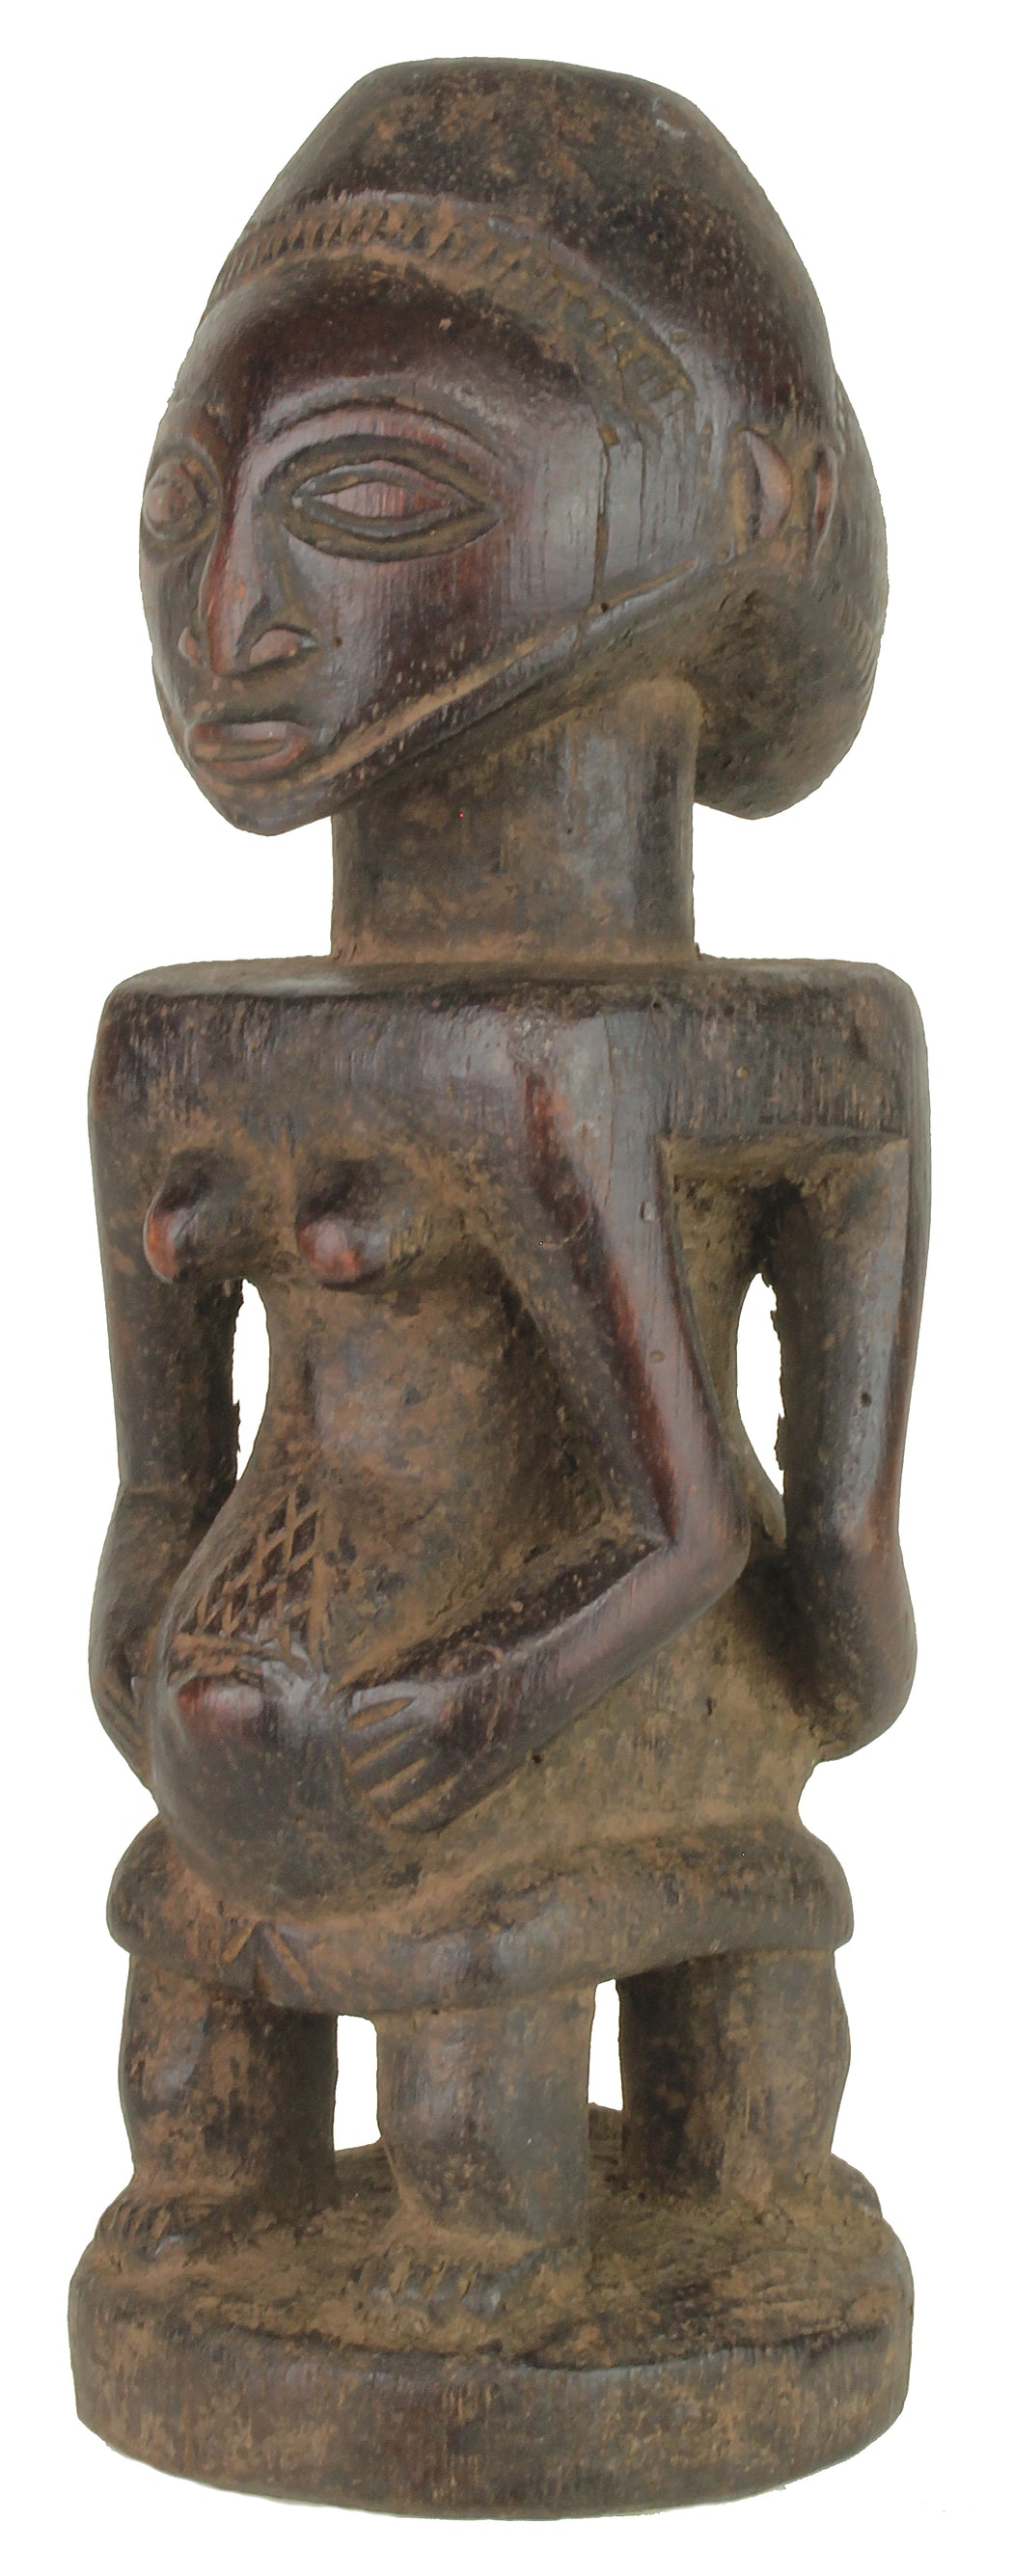 "Luba Tribal Power Figure Statue of Congo | 9"" - Niger Bend"